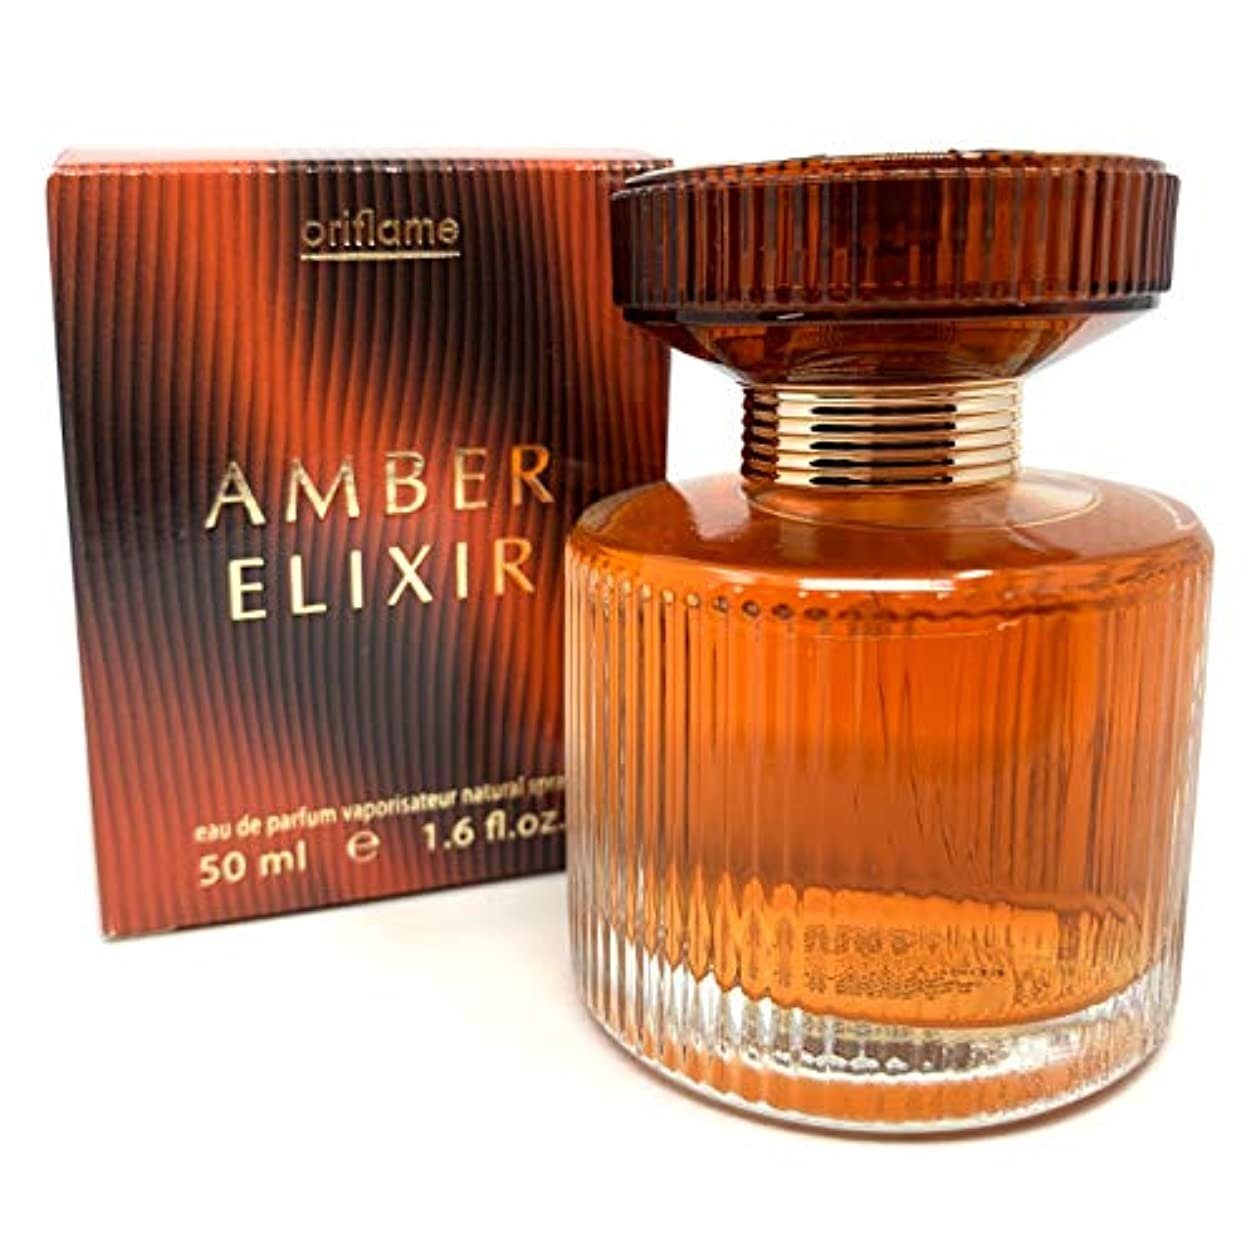 素朴な十分です外出ORIFLAME Amber Elixir Eau De Parfum Natural Spray 50ml - 1.6oz